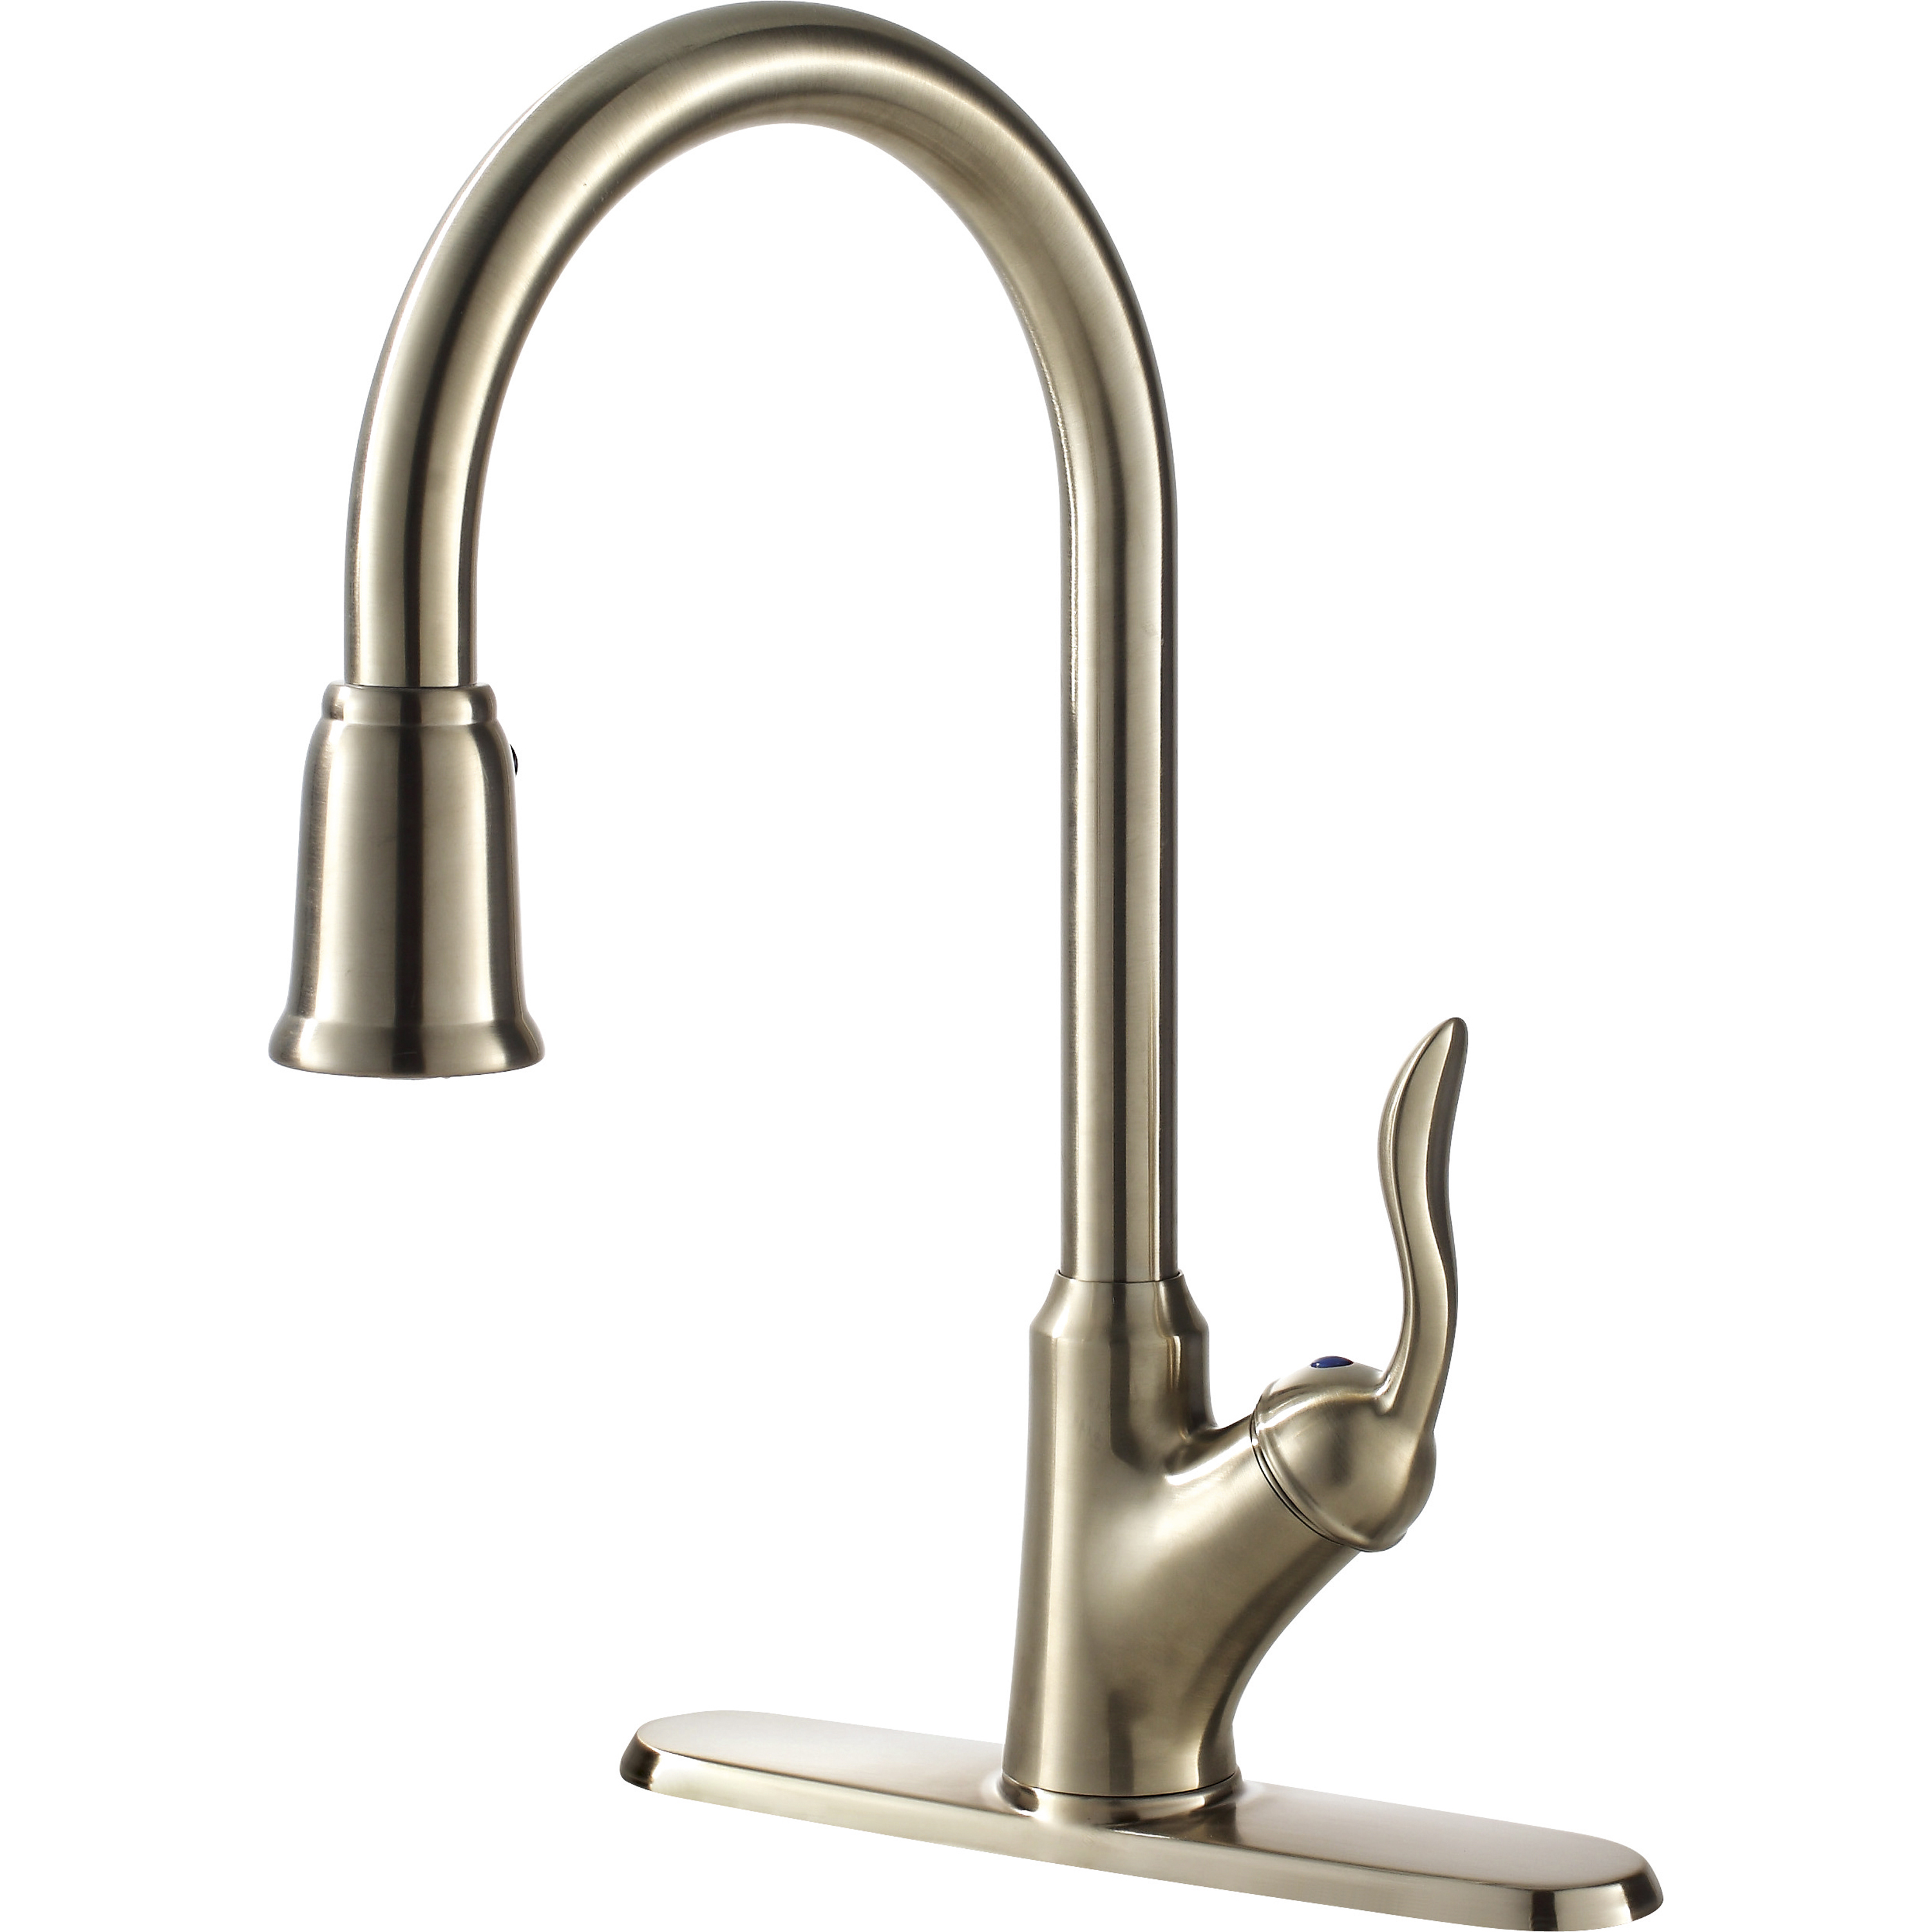 pulldown kitchen faucet rustic country decor transitional collection single handle